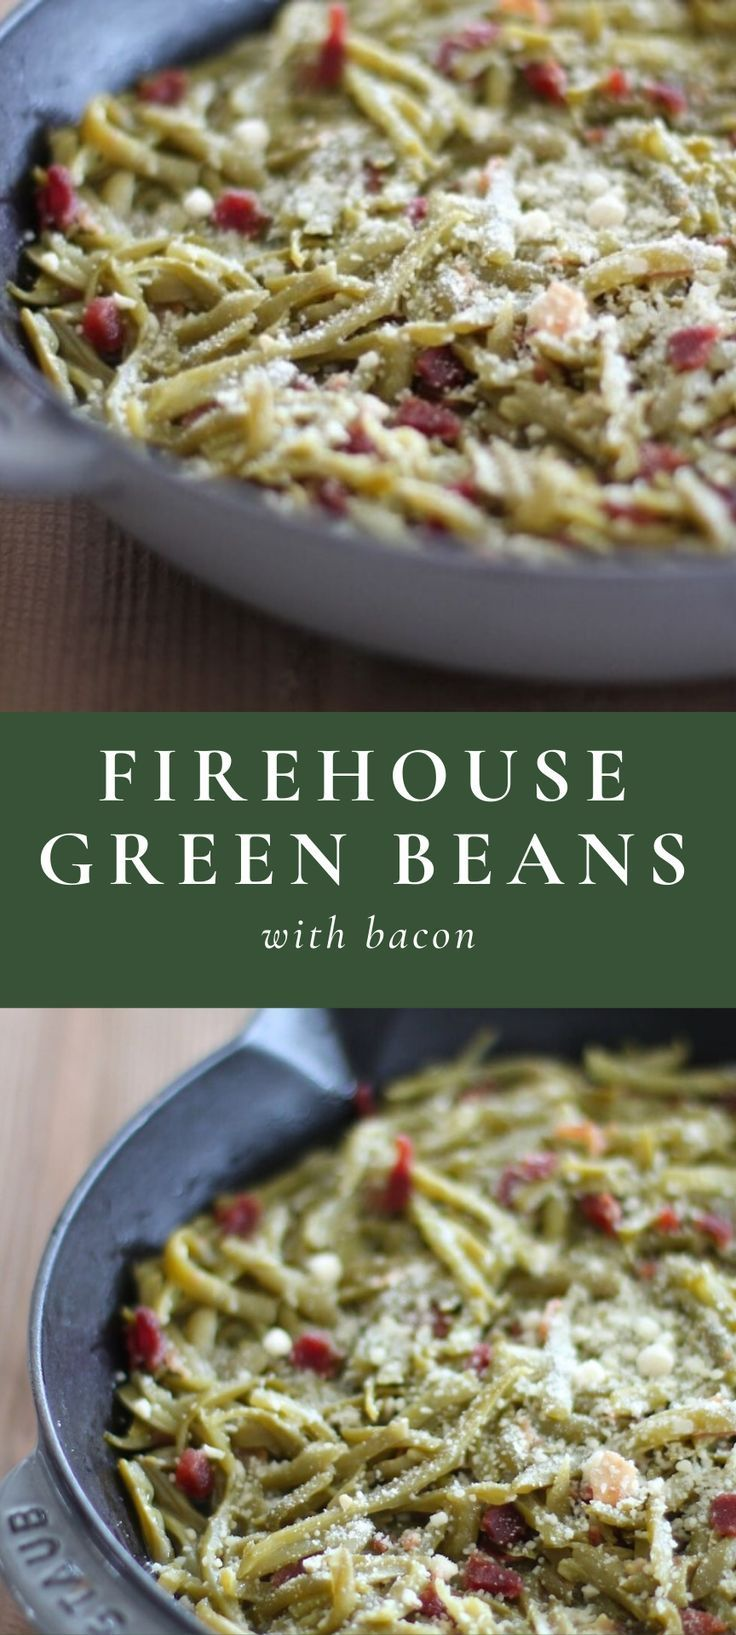 Firehouse Greenbeans with Bacon #greenbean Step aside green bean casserole, Firehouse Green Beans with Bacon are an easy, last-minute side dish for holidays with the best blend of garlic, parmesan and bacon that will have green bean haters begging for the recipe! #greenbeans #bacon #firehousegreenbeans #sidedish #vegetable #greenveggie #greenbeancasserole